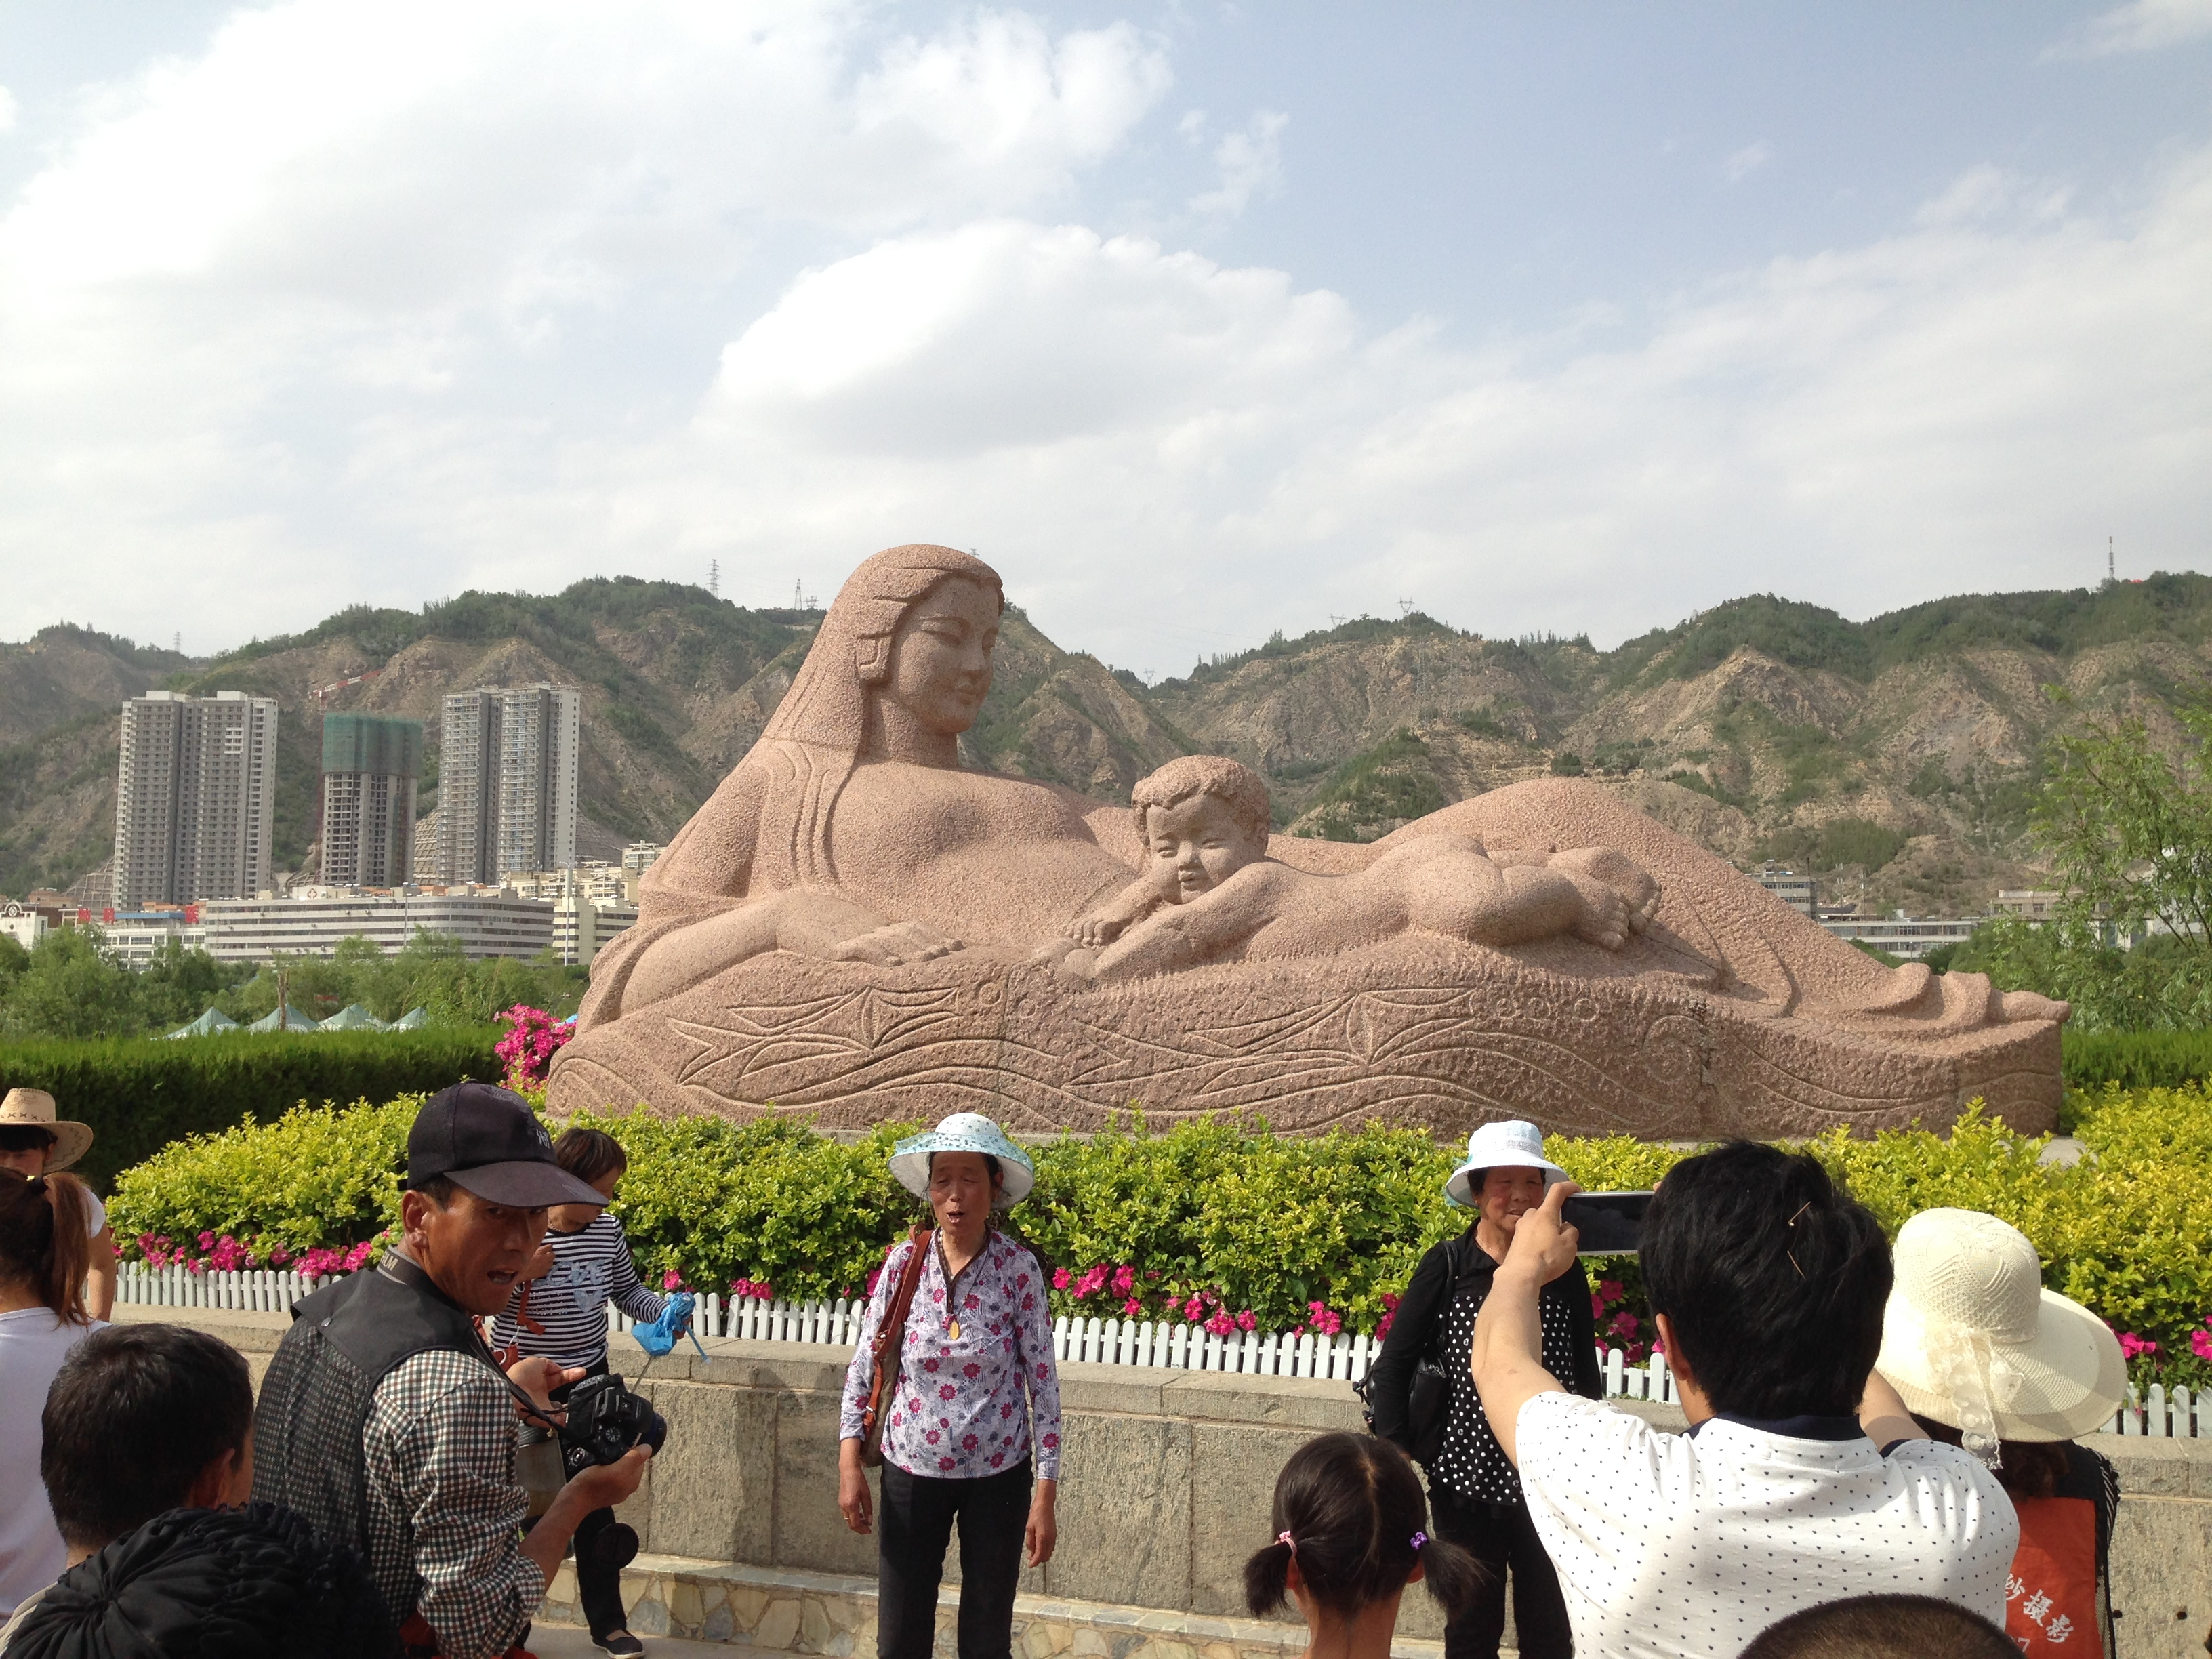 Mother River Statue in Lanzhou, June 8